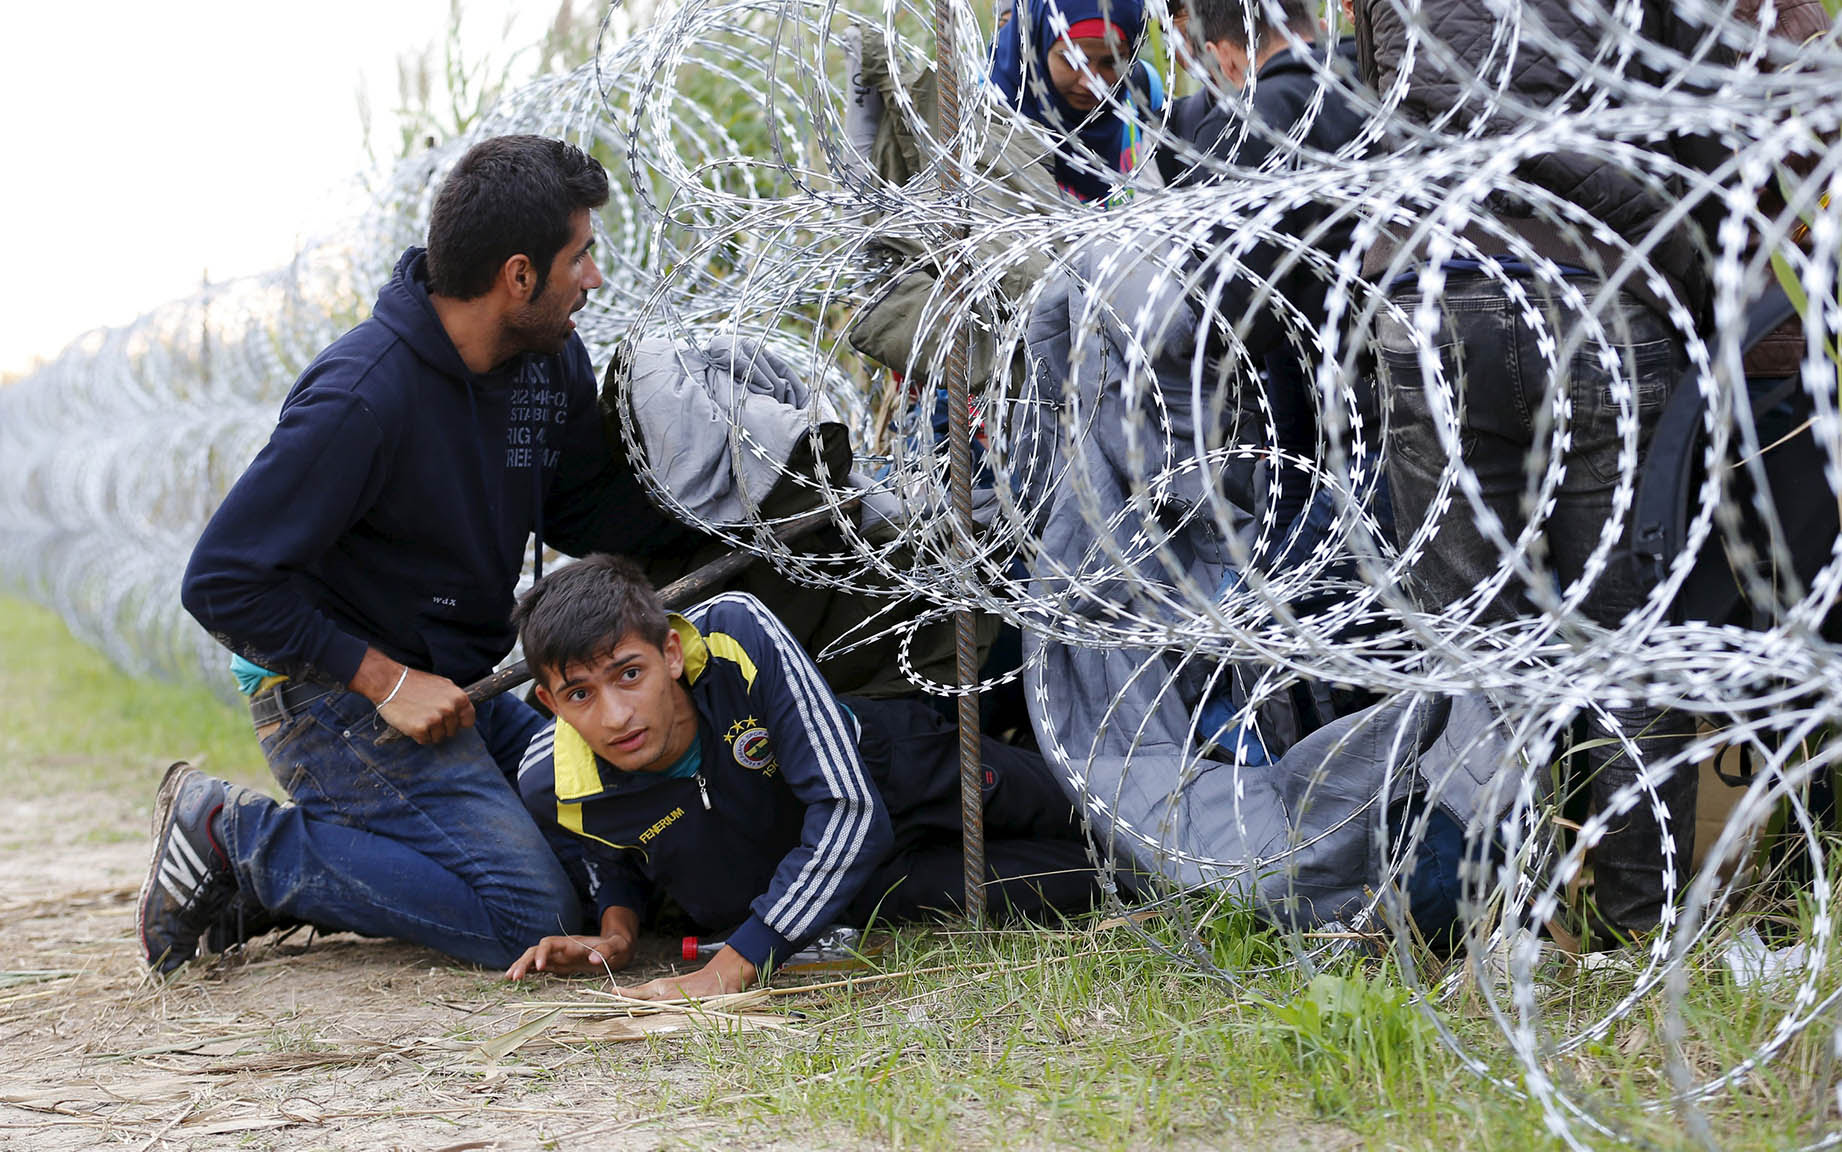 Syrian migrants cross under a fence at Hungarian-Serbian border near Roszke